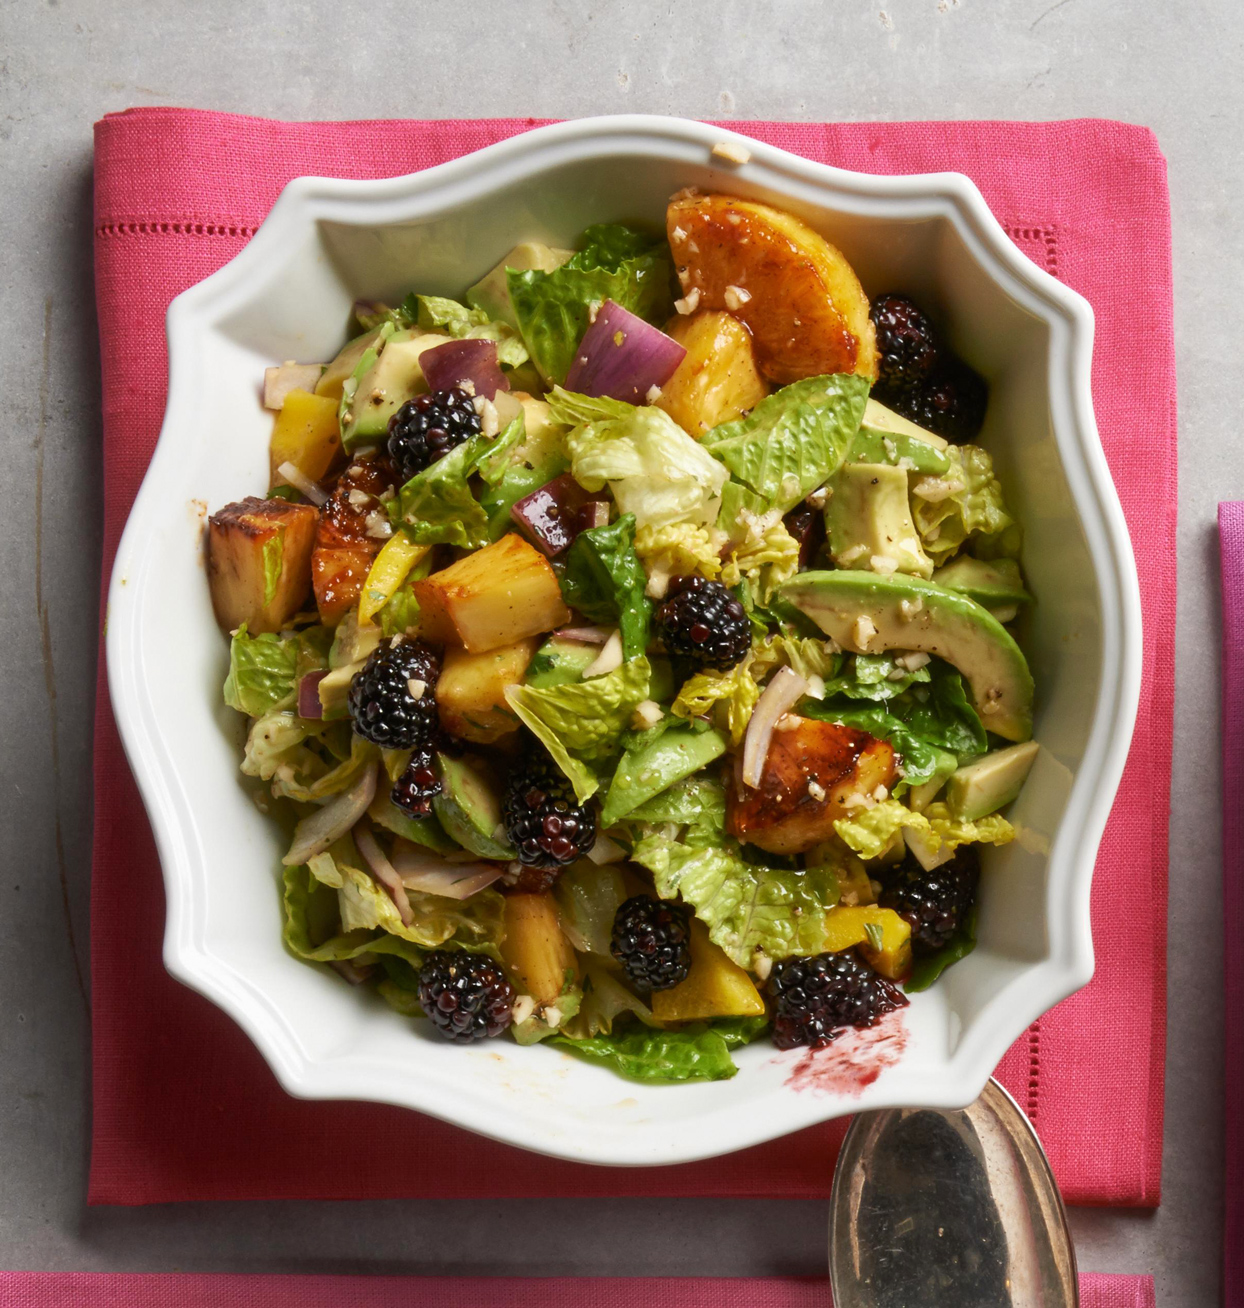 Avocado and Caramelized Pineapple Salad